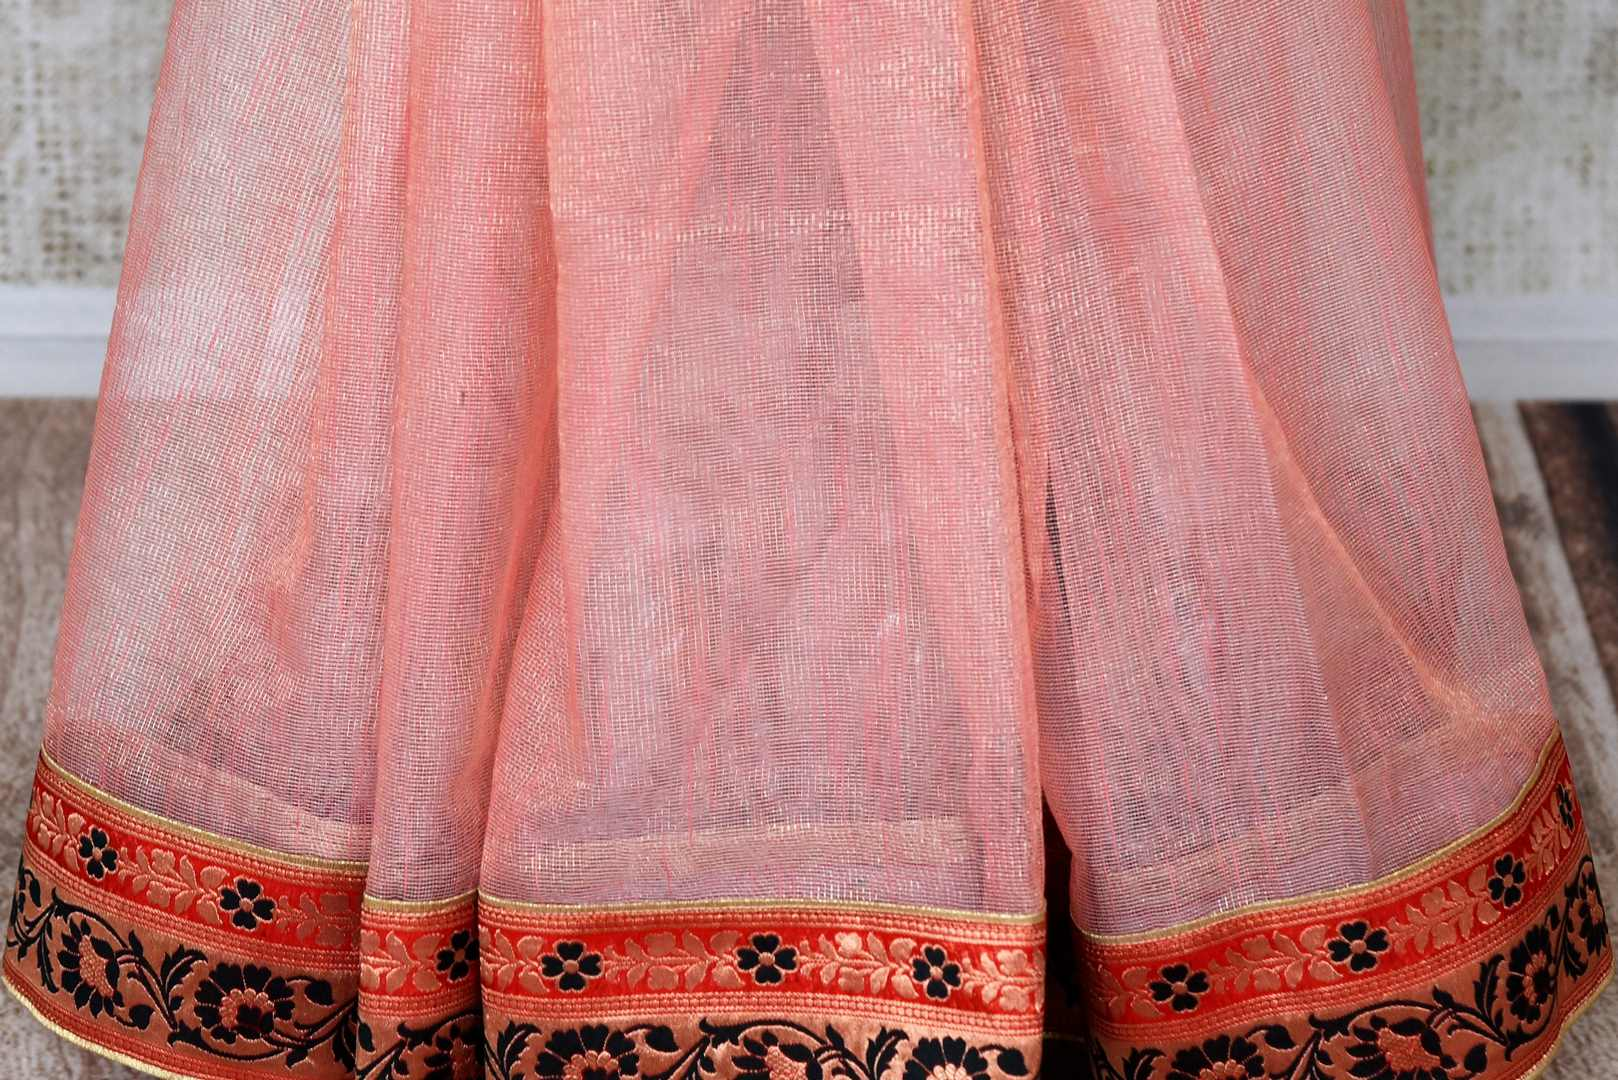 Shop pink jute sari online in USA with Banarasi border. Elevate your traditional style with exquisite Indian designer sarees from Pure Elegance Indian clothing store in USA. Explore a range of stunning silk sarees, embroidered sarees, wedding sarees especially from India for women in USA.-pleats